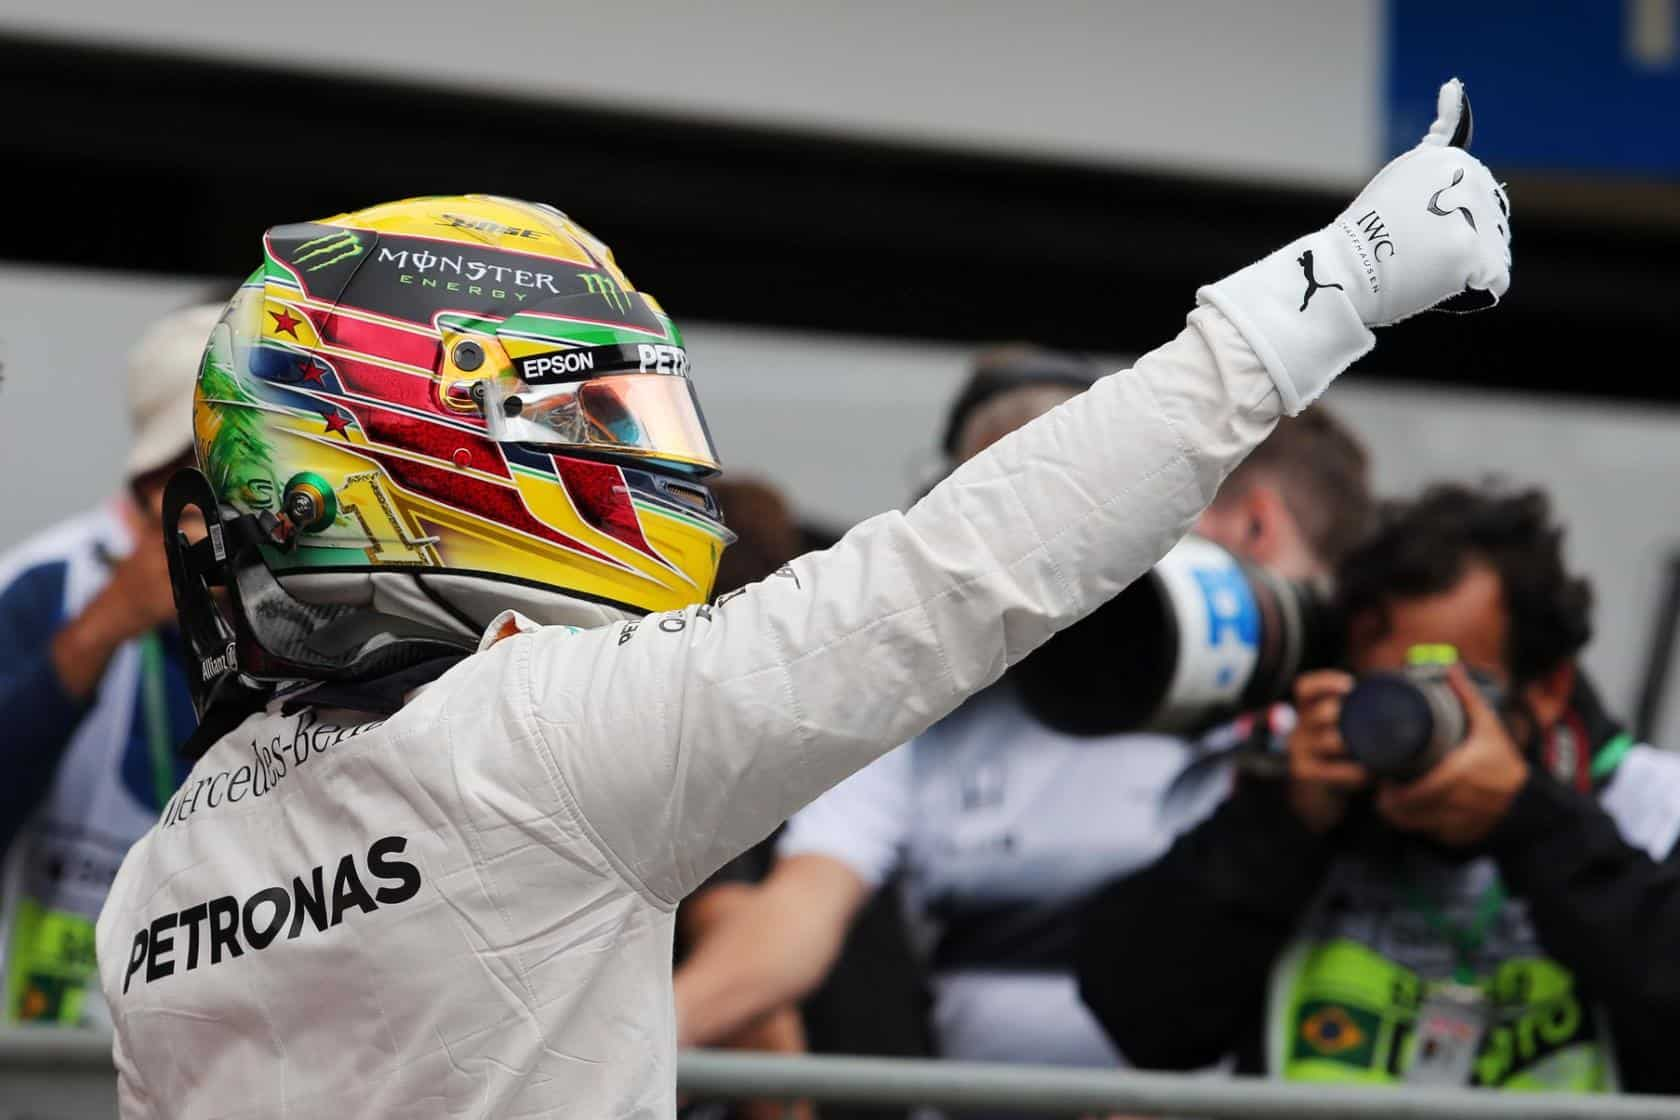 hamilton-pole-brazil-f1-2016-celebration-foto-f1fanatic-xpb